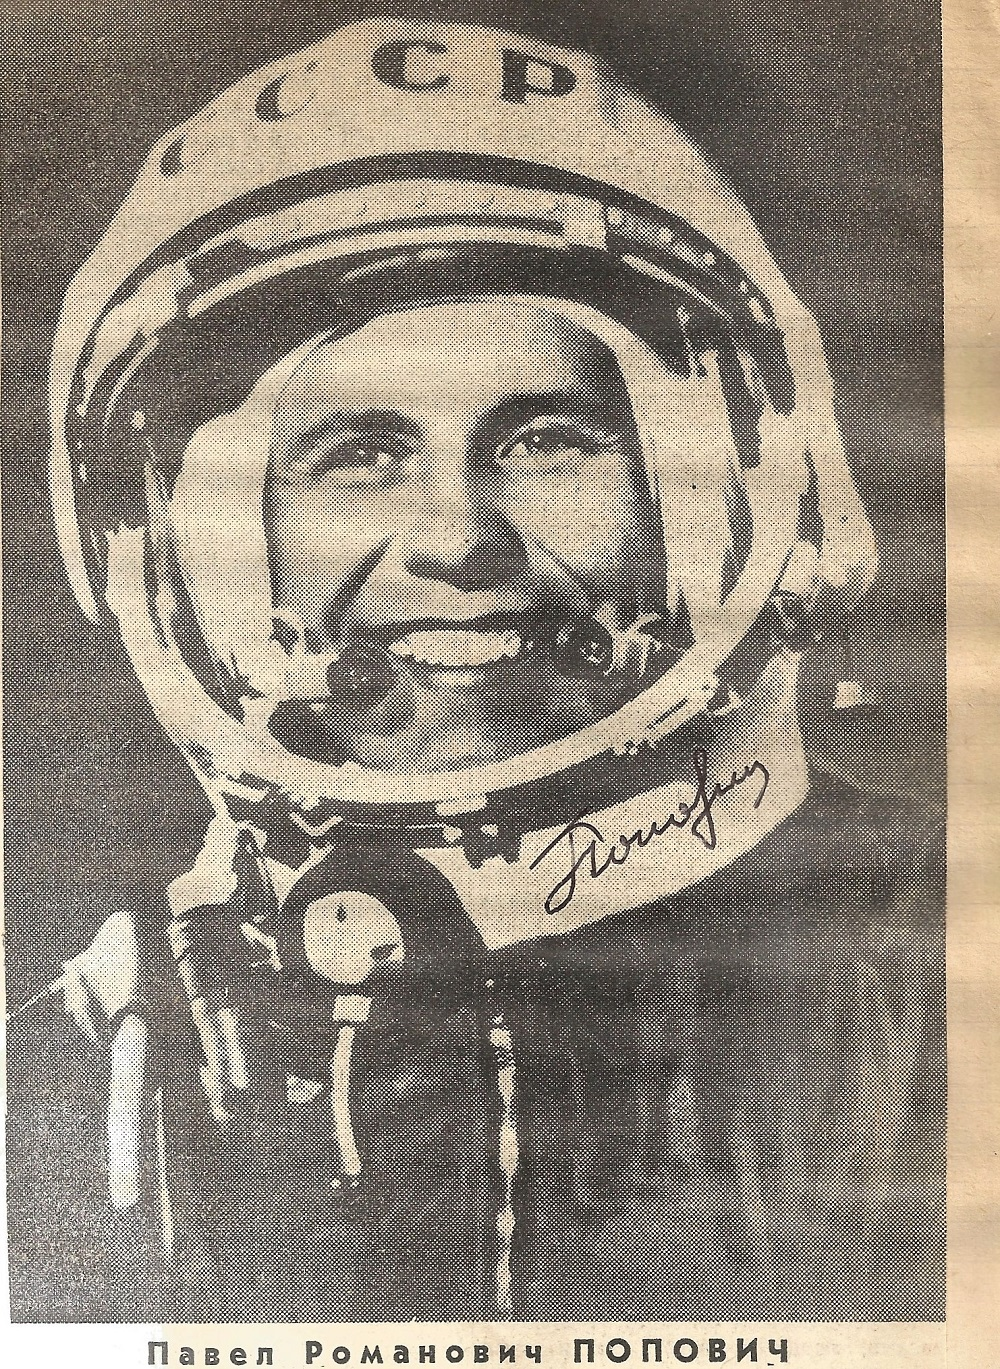 1950/60s Russian Cosmonauts multiple signed hard backed scrapbook compiled by a worker at Baikonur - Image 12 of 22